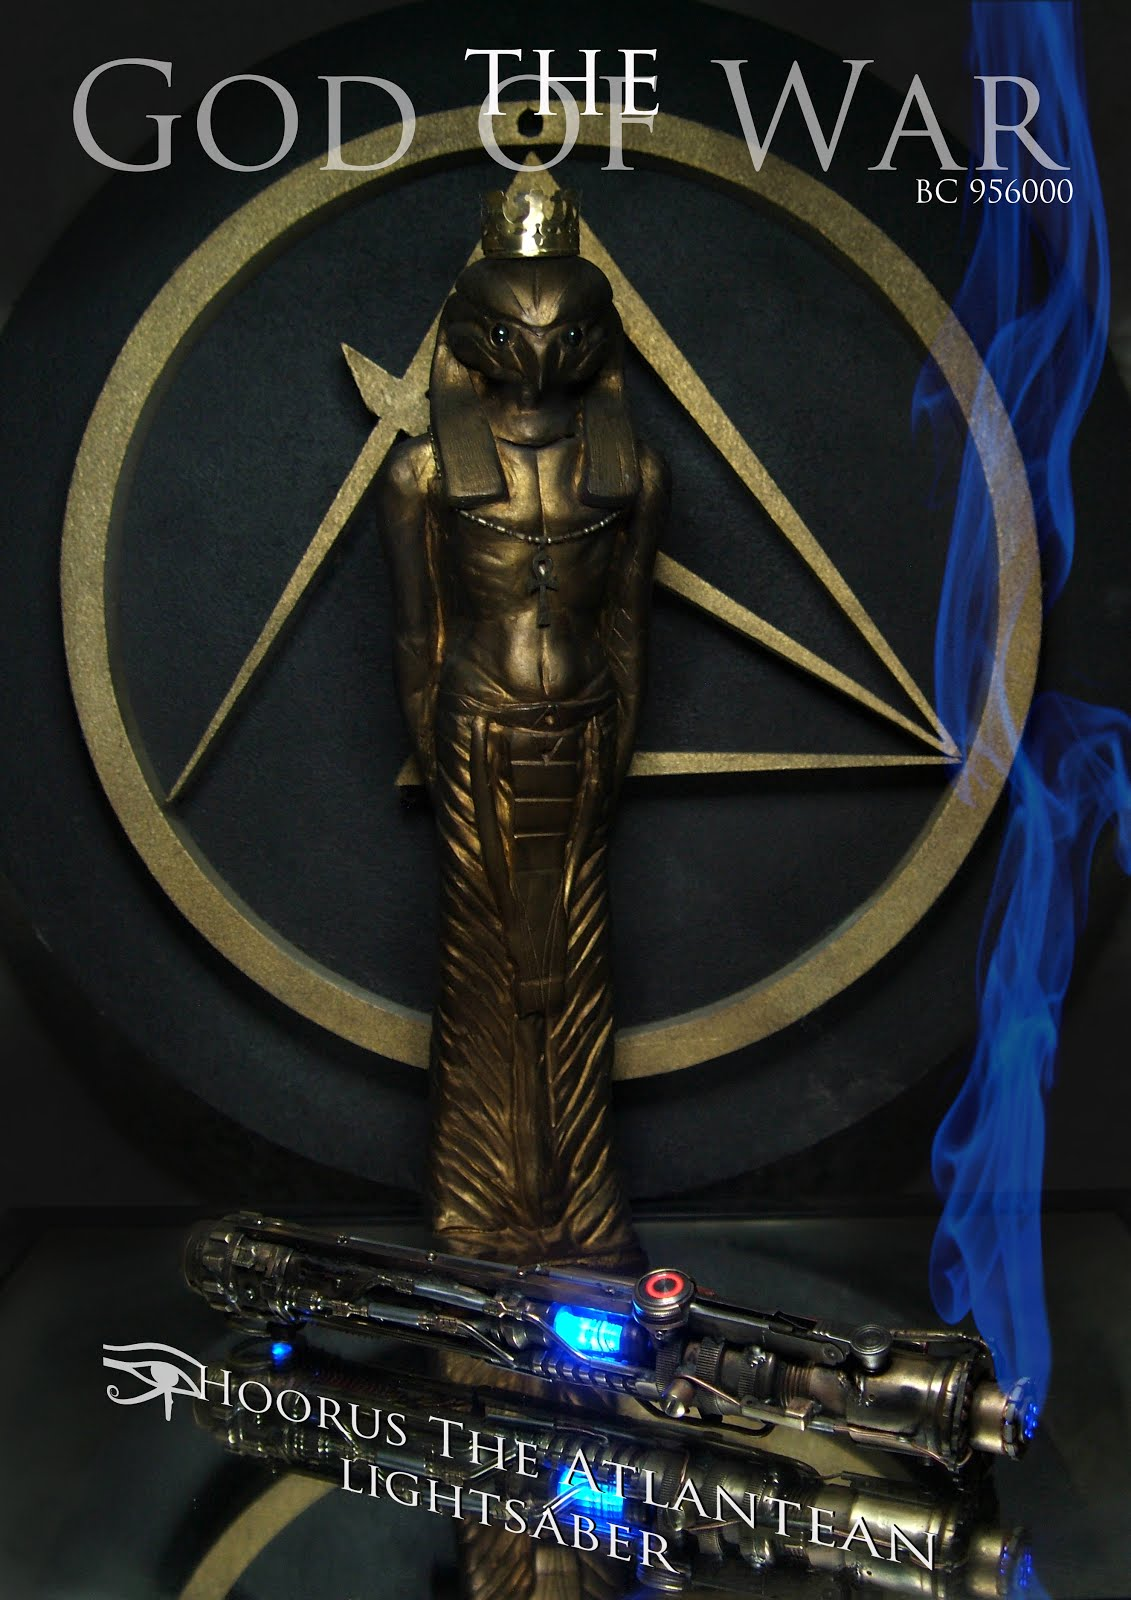 Hoorus the Atlantean Lightsaber